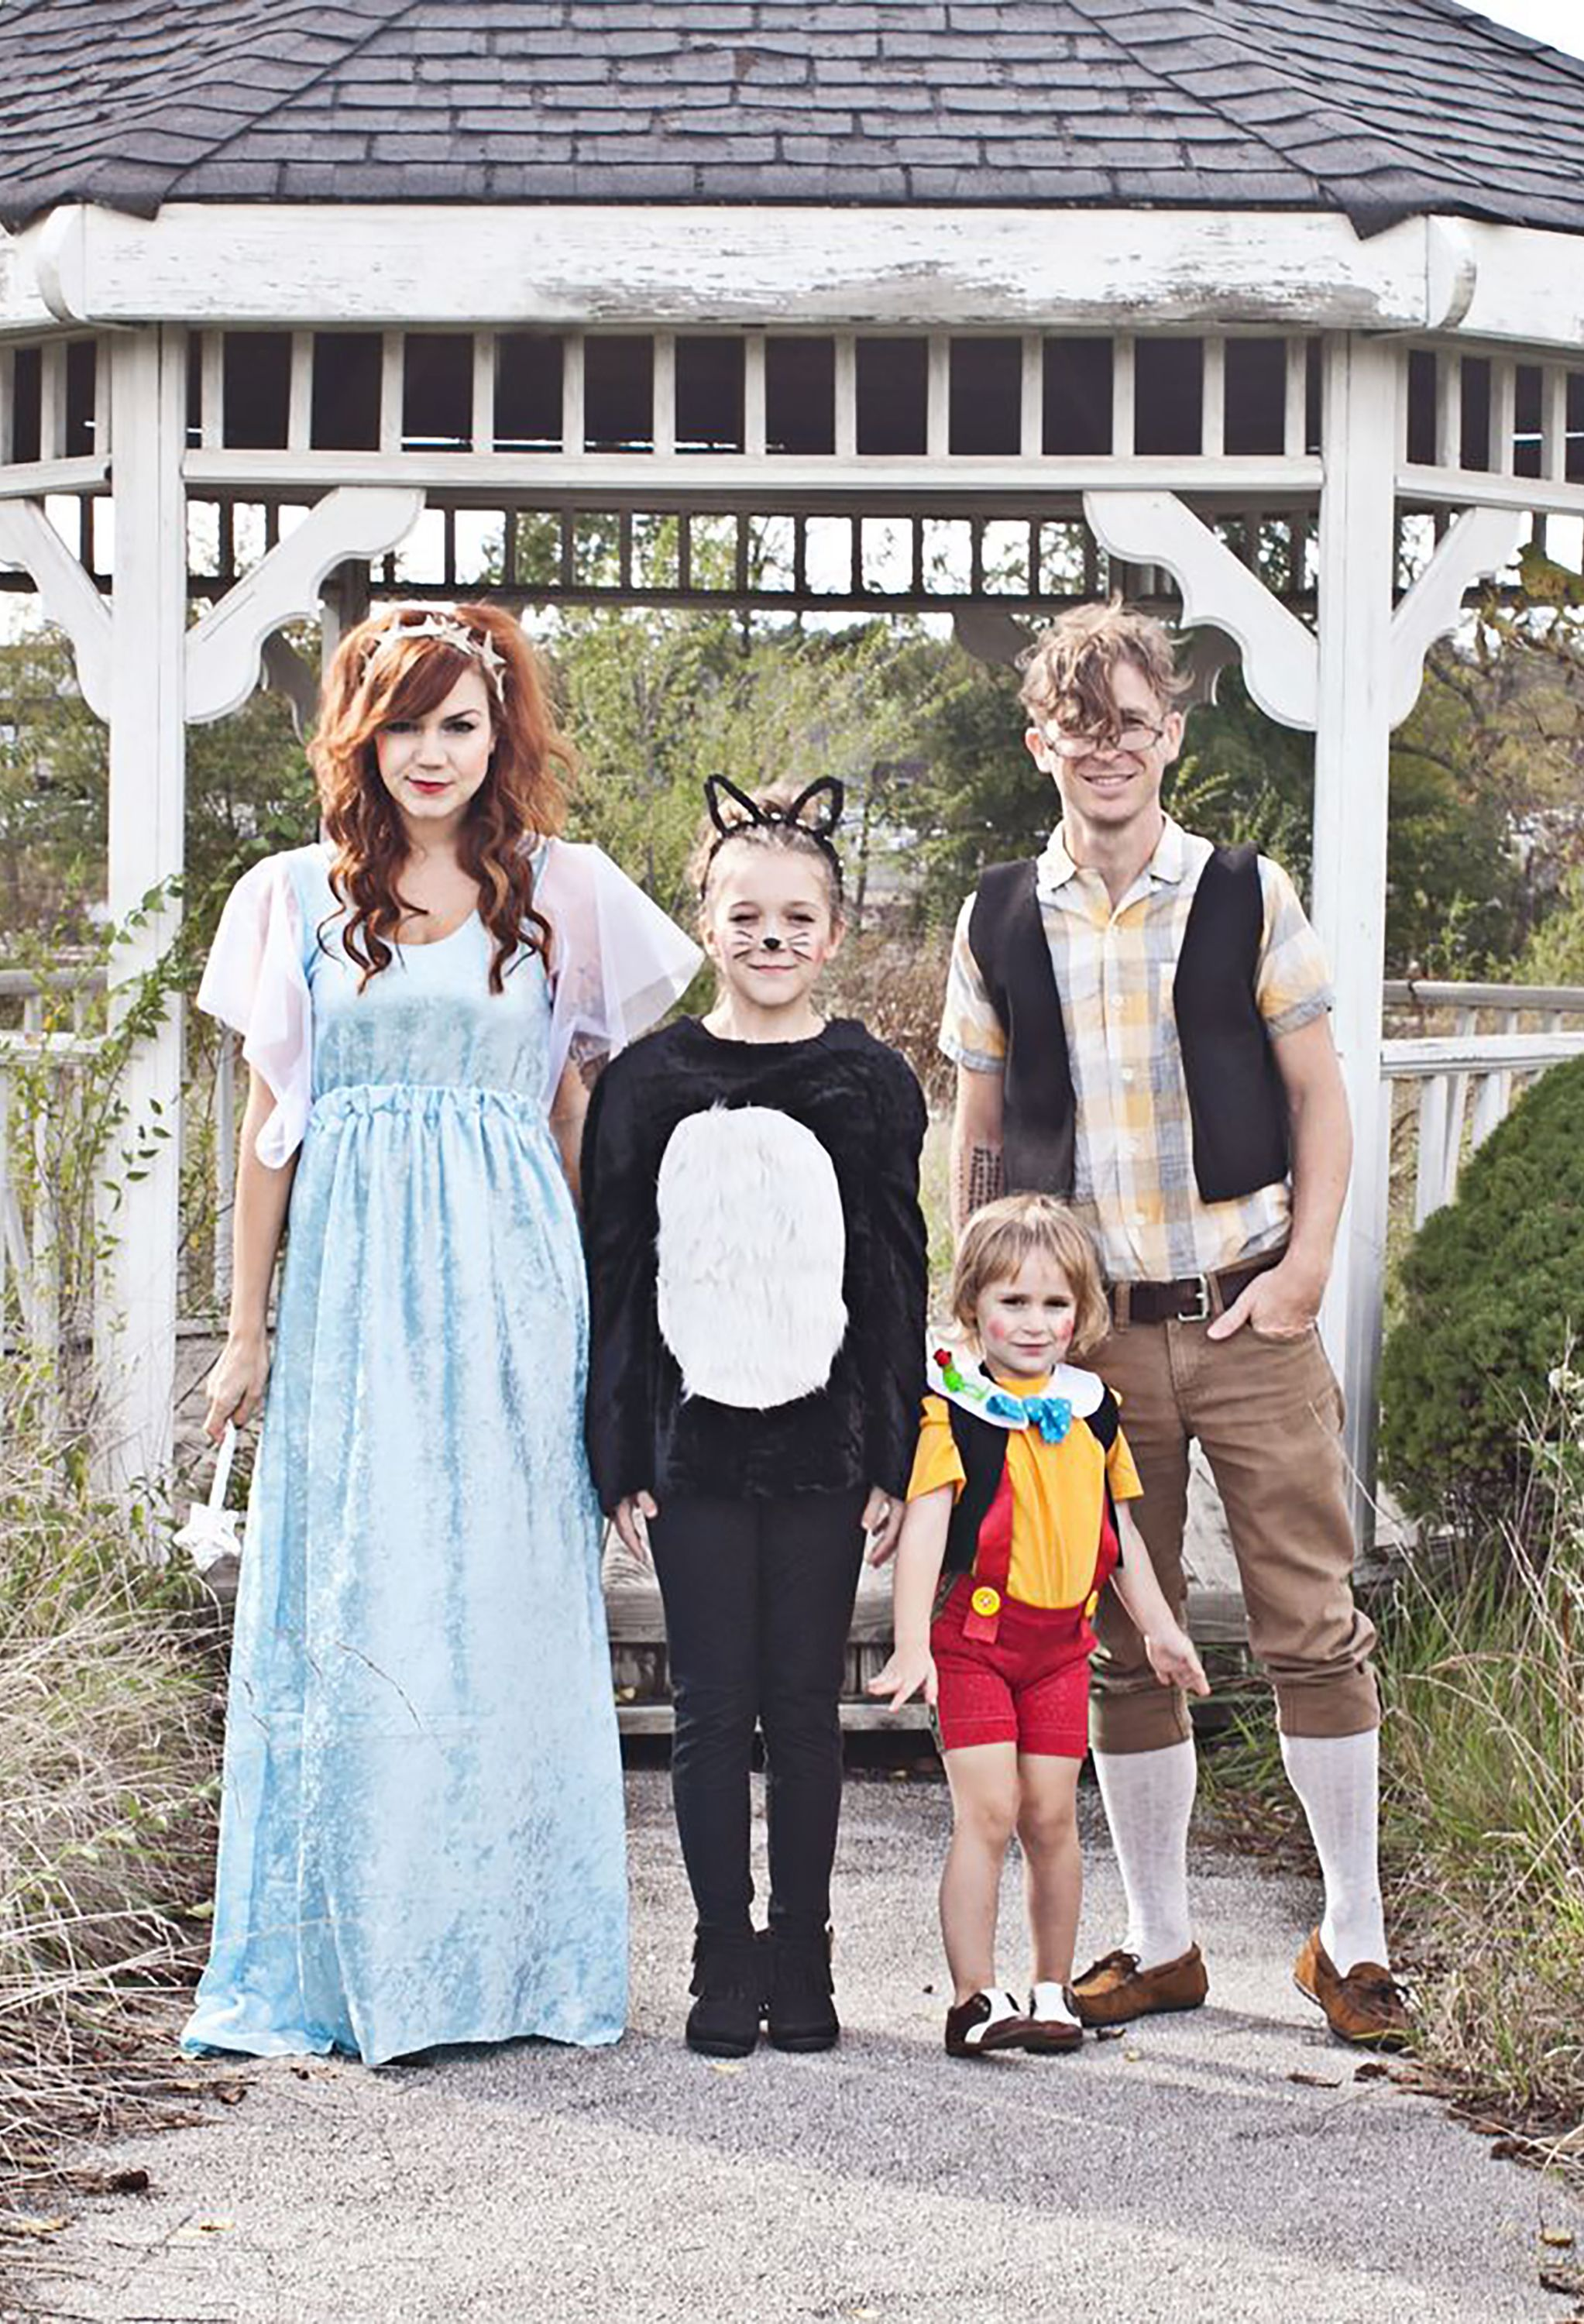 family halloween costumes  sc 1 st  Womanu0027s Day & 30 Best Family Halloween Costumes 2018 - Cute Ideas for Themed ...